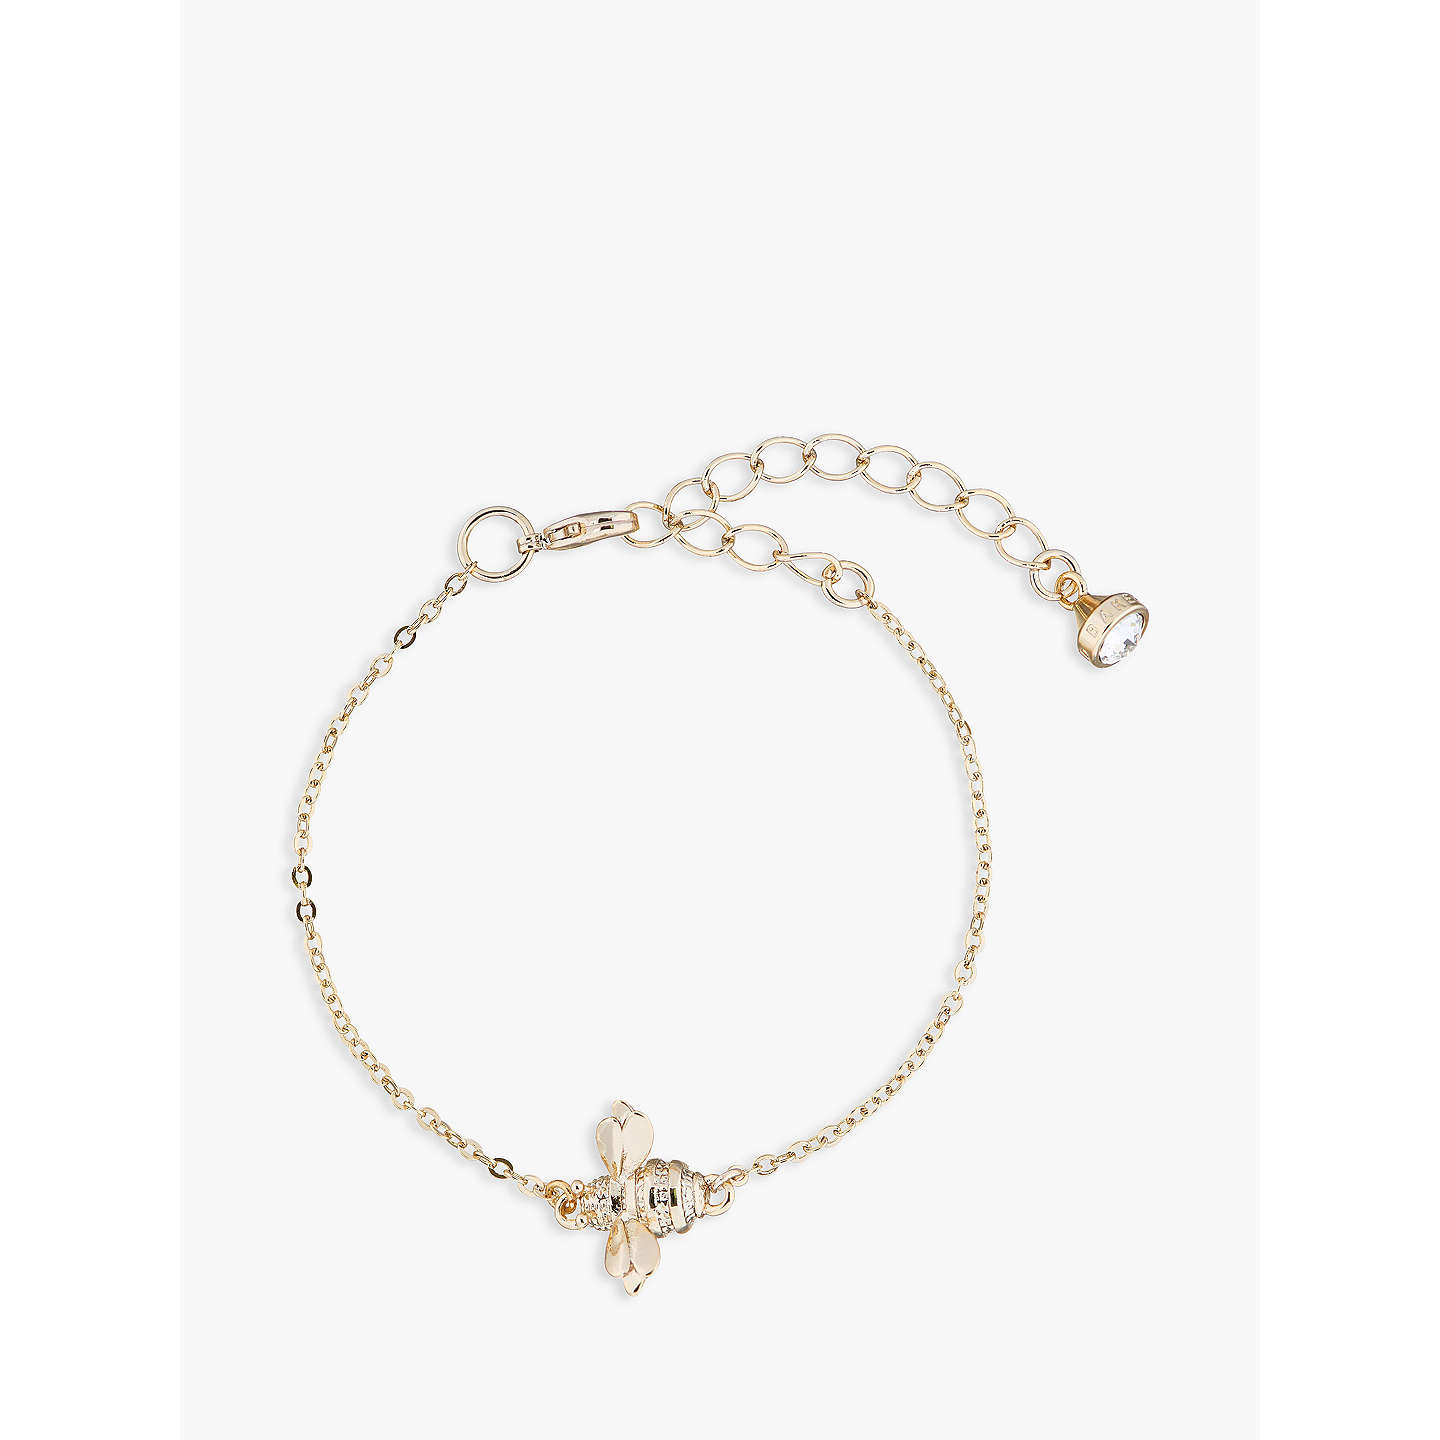 BuyTed Baker Beedina Swarovski Crystal Bumble Bee Chain Bracelet, Gold  Online At Johnlewis.com ...